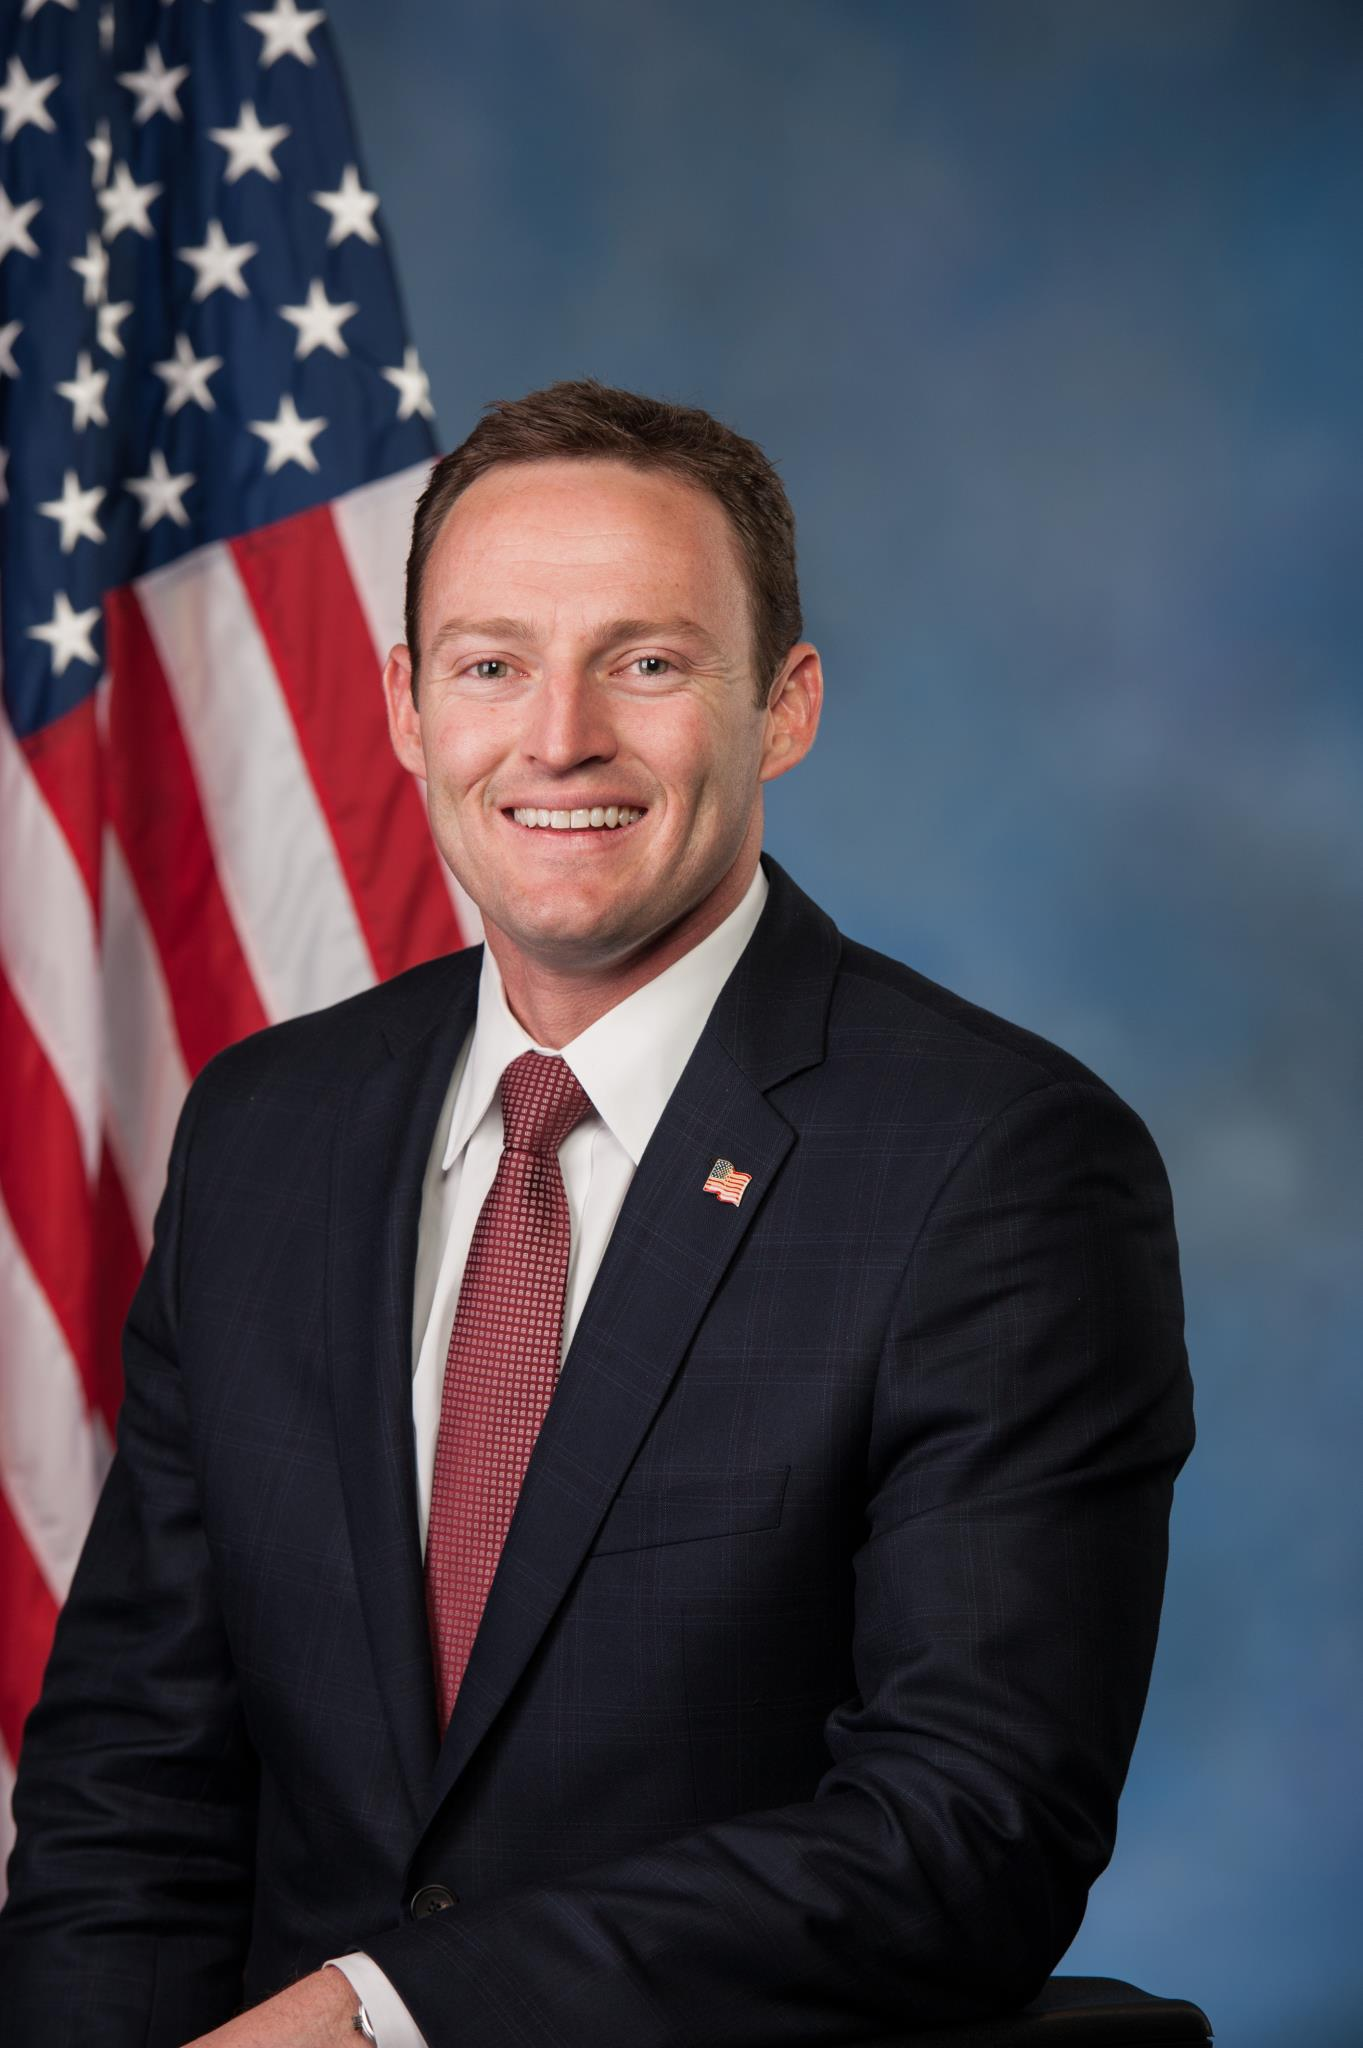 Patrick Murphy Net Worth